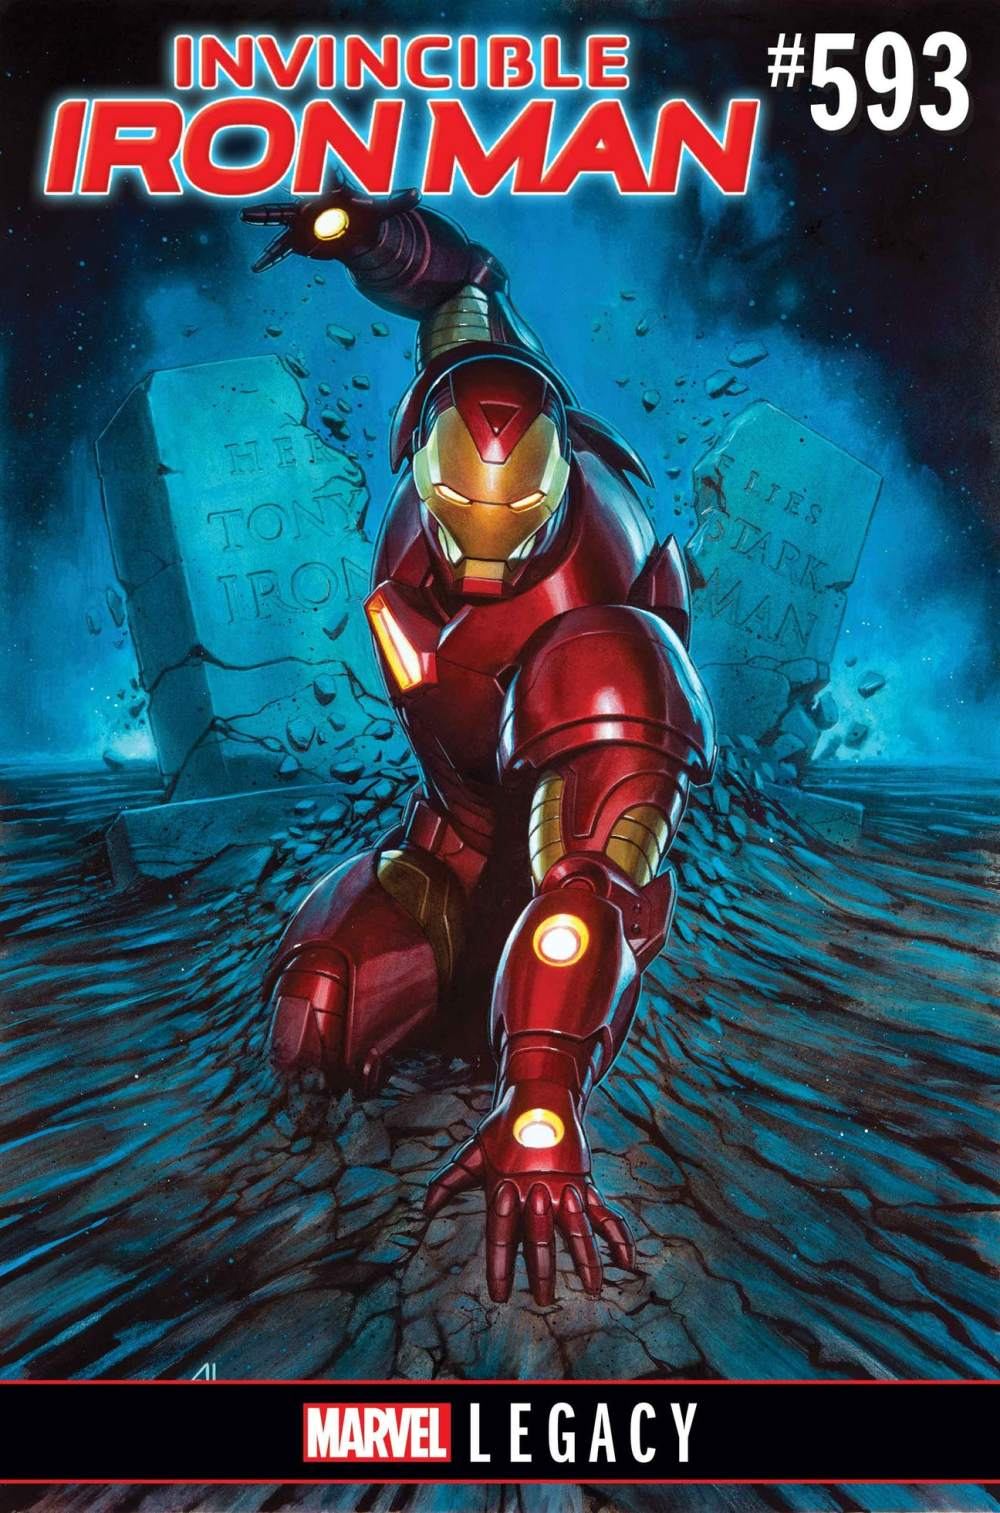 marvel-legacy-invincible-iron-man-tony-stark-cover.jpg